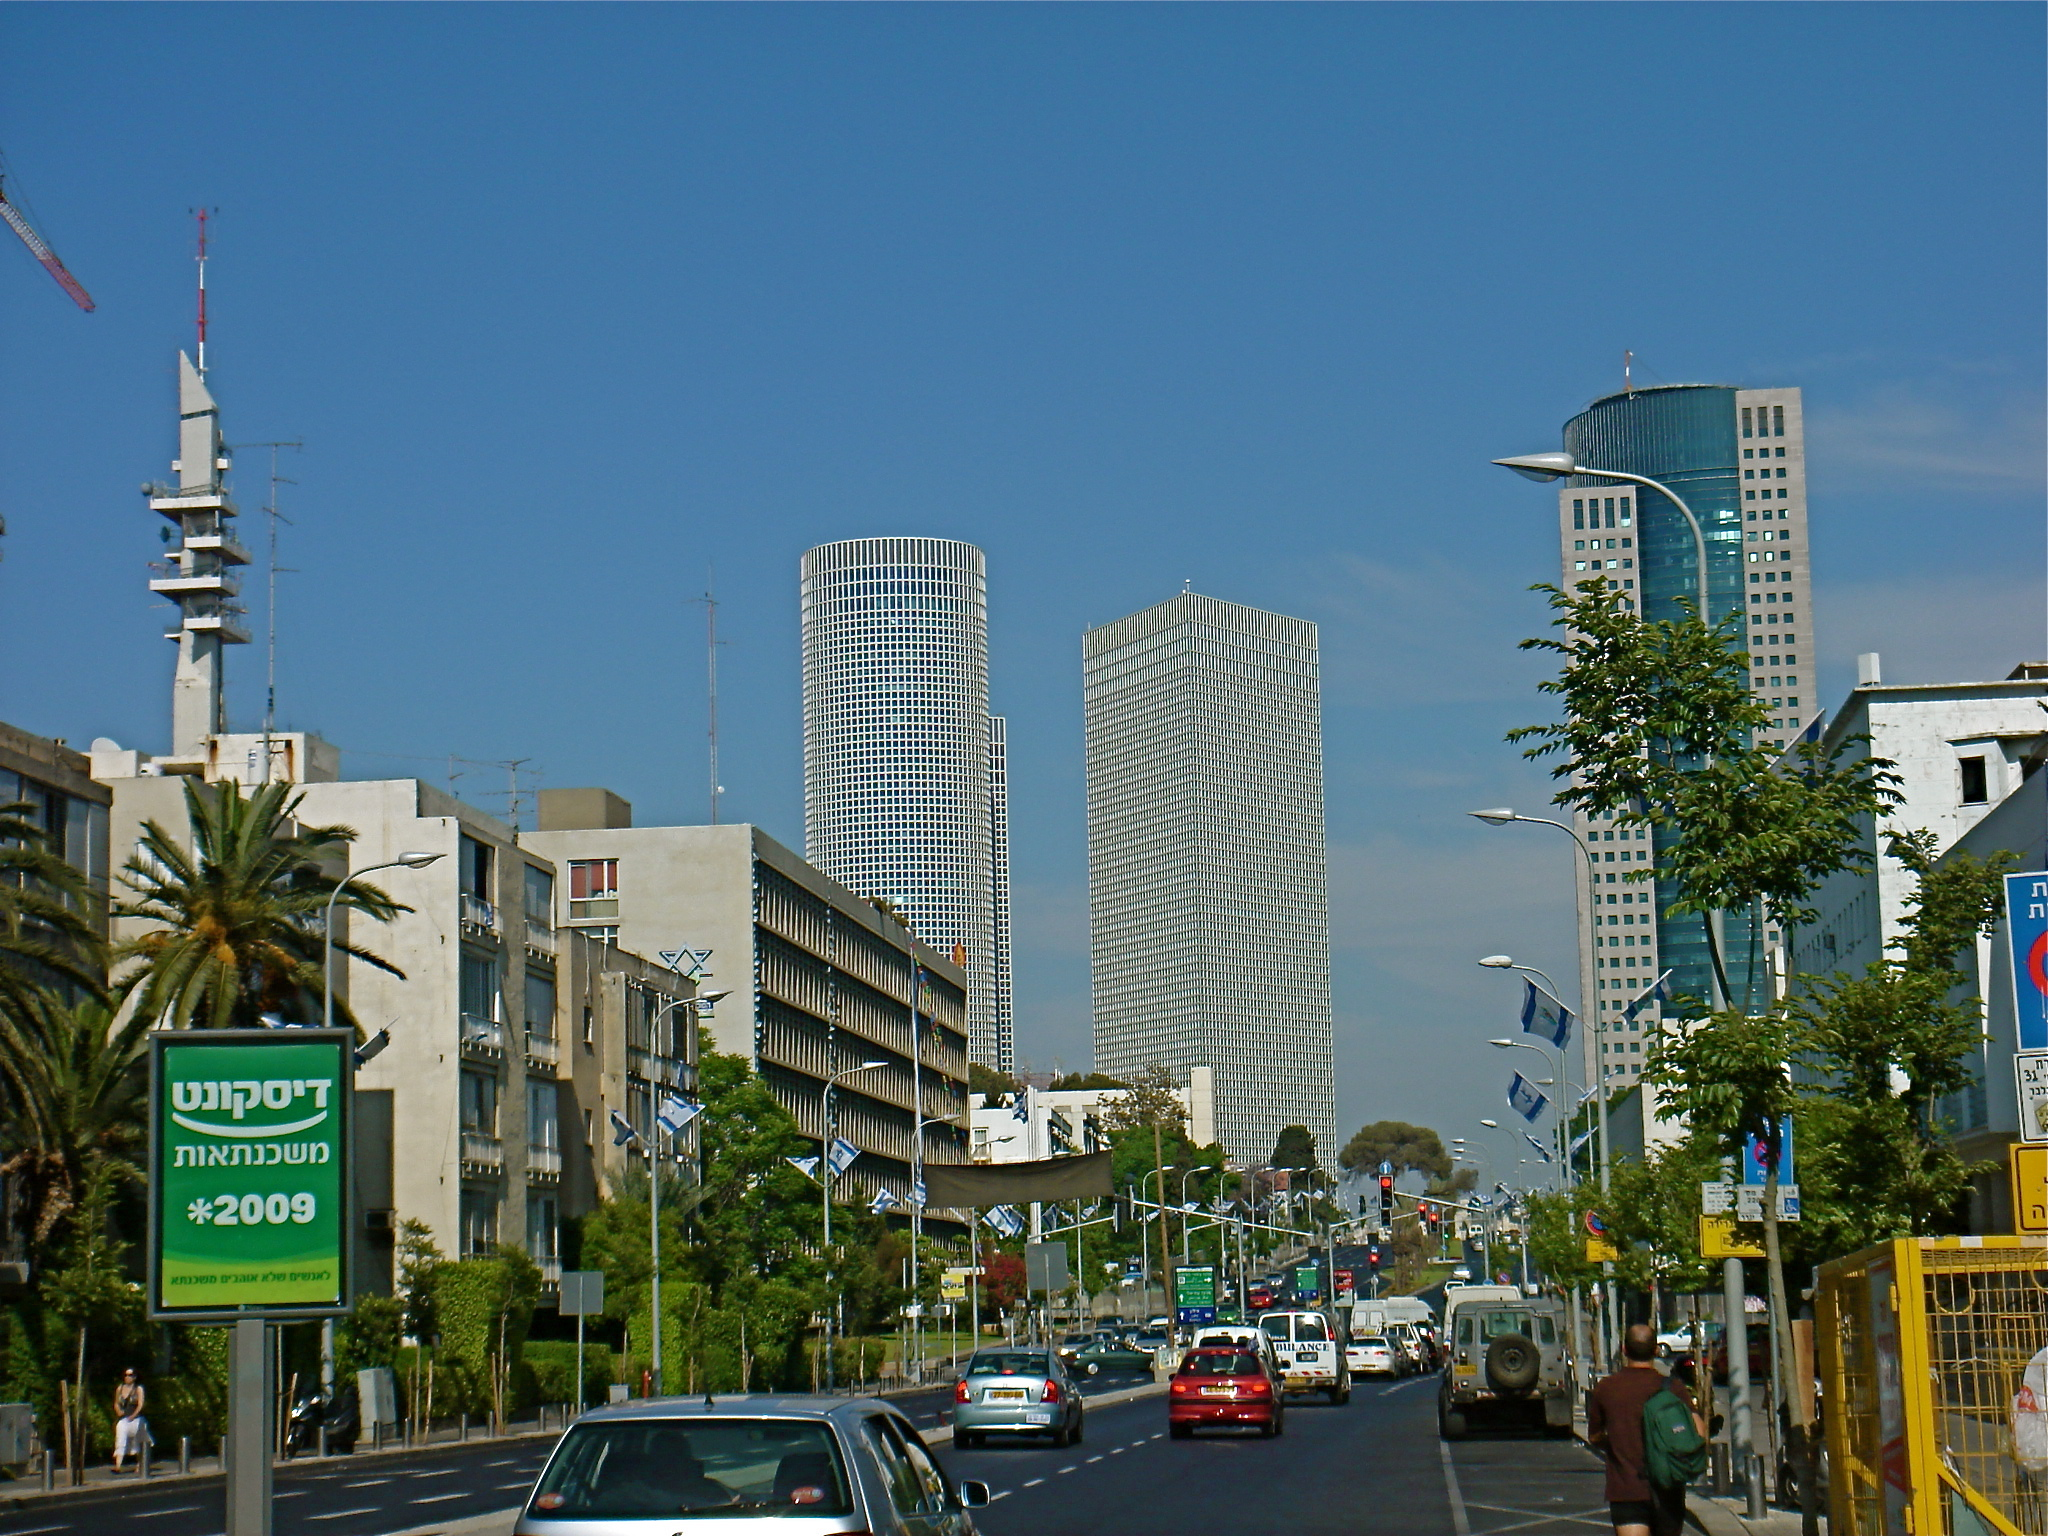 East Tel Aviv – Culinary Delights, High Powered Business, & More